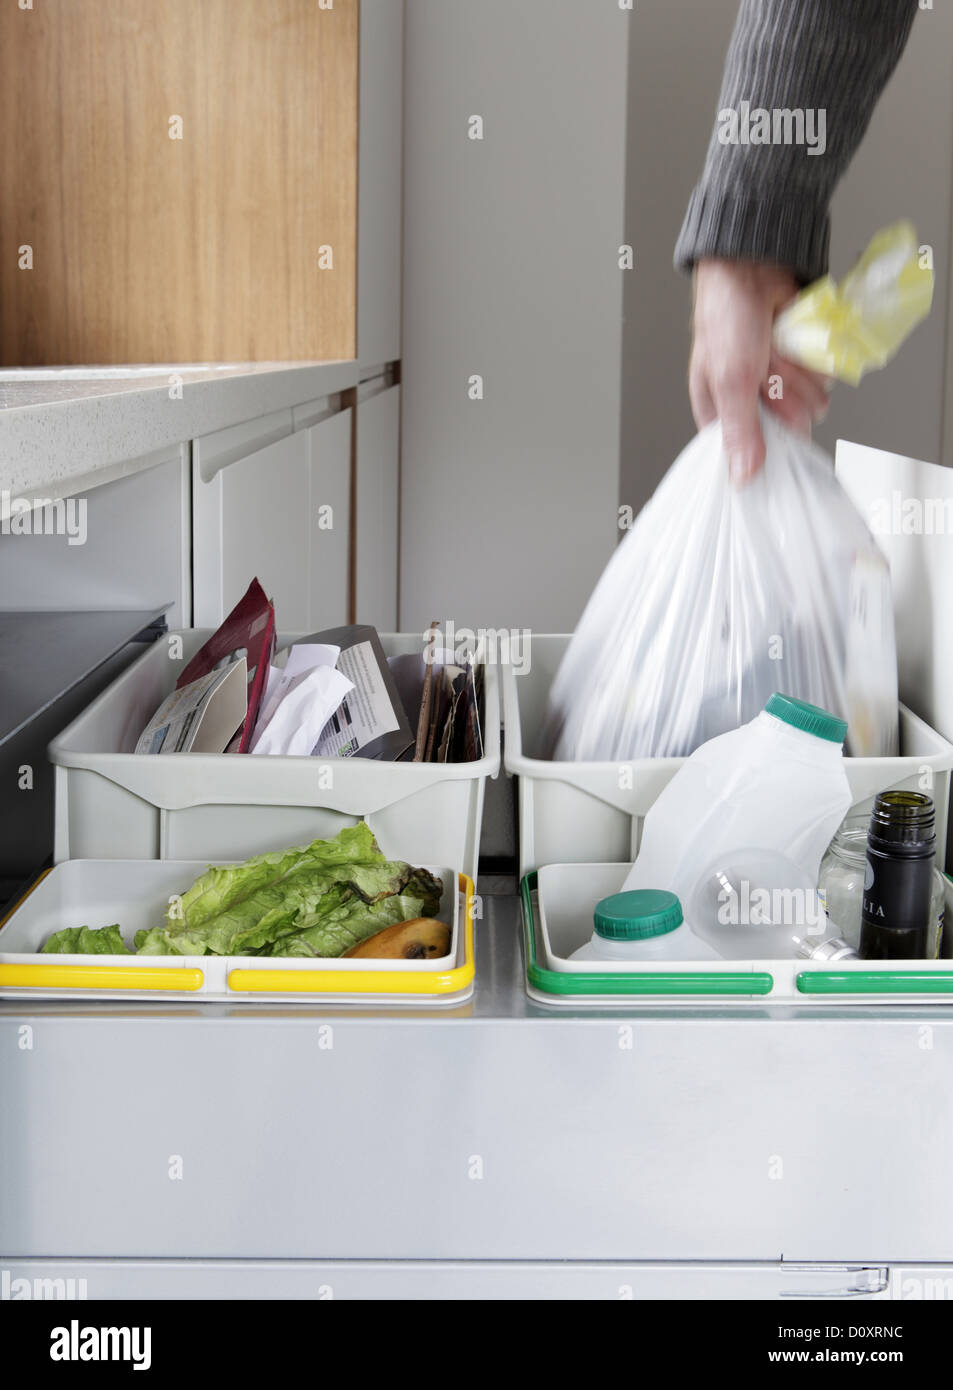 Person removing rubbish bag from waste and recycling drawer - Stock Image